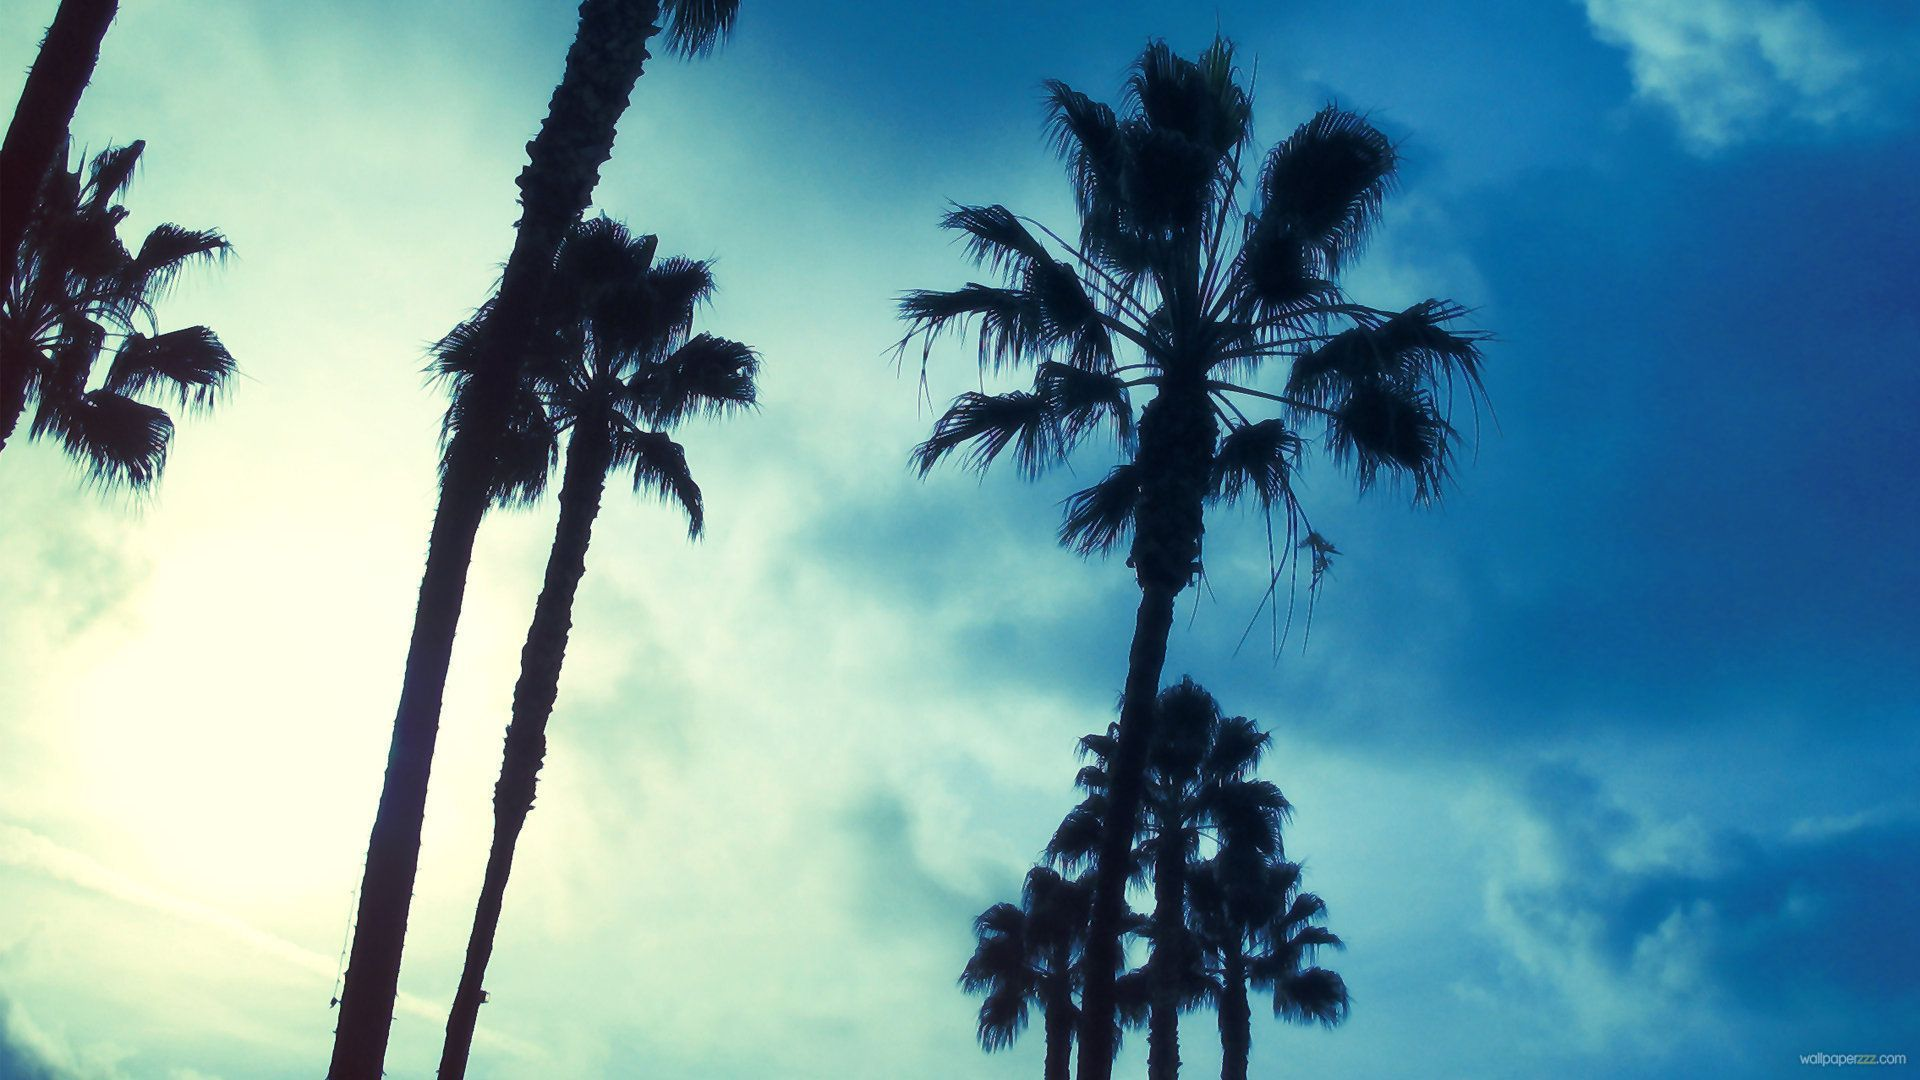 Palm Trees wallpaper  wallpaper free download 1920x1080